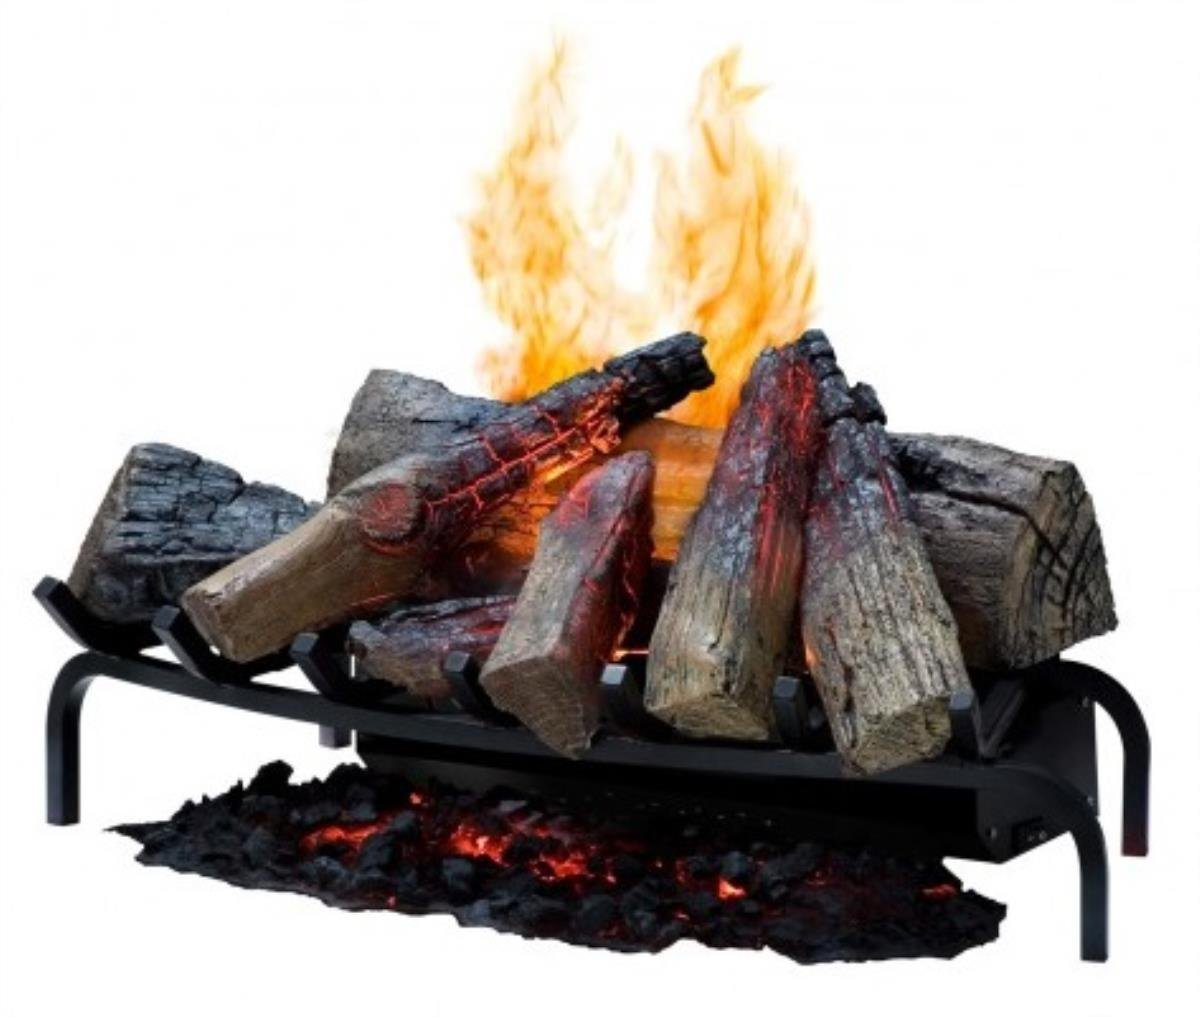 Pros and Cons of Electric Fireplace Logs